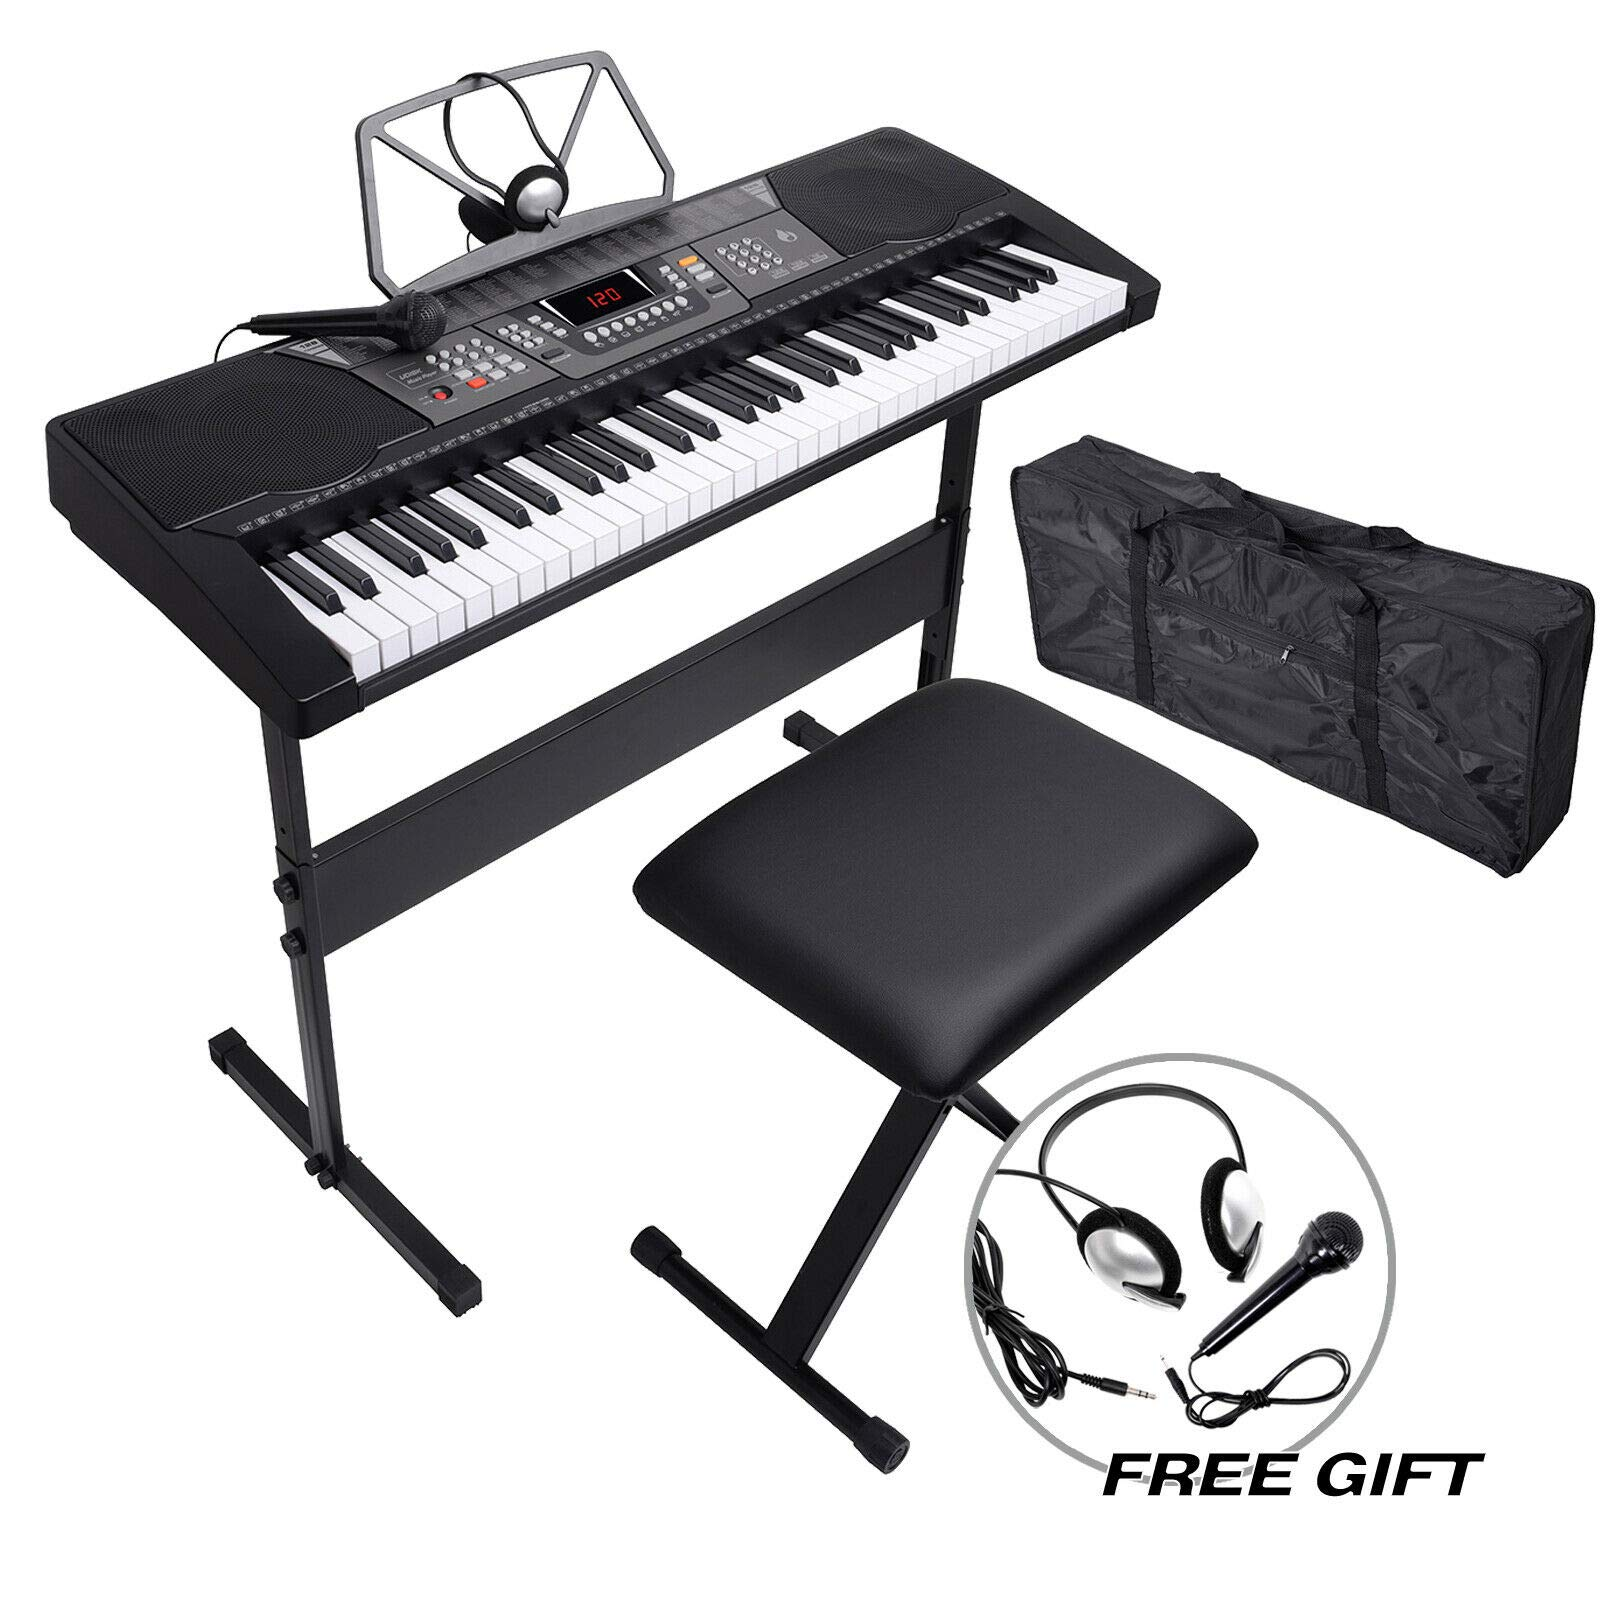 61 Key Electronic Keyboard Piano Organ w/Microphone Stand Stool Earphone Black Discount for Business Customers and B2B by Smart Choice America by SMART CHOICE AMERICA